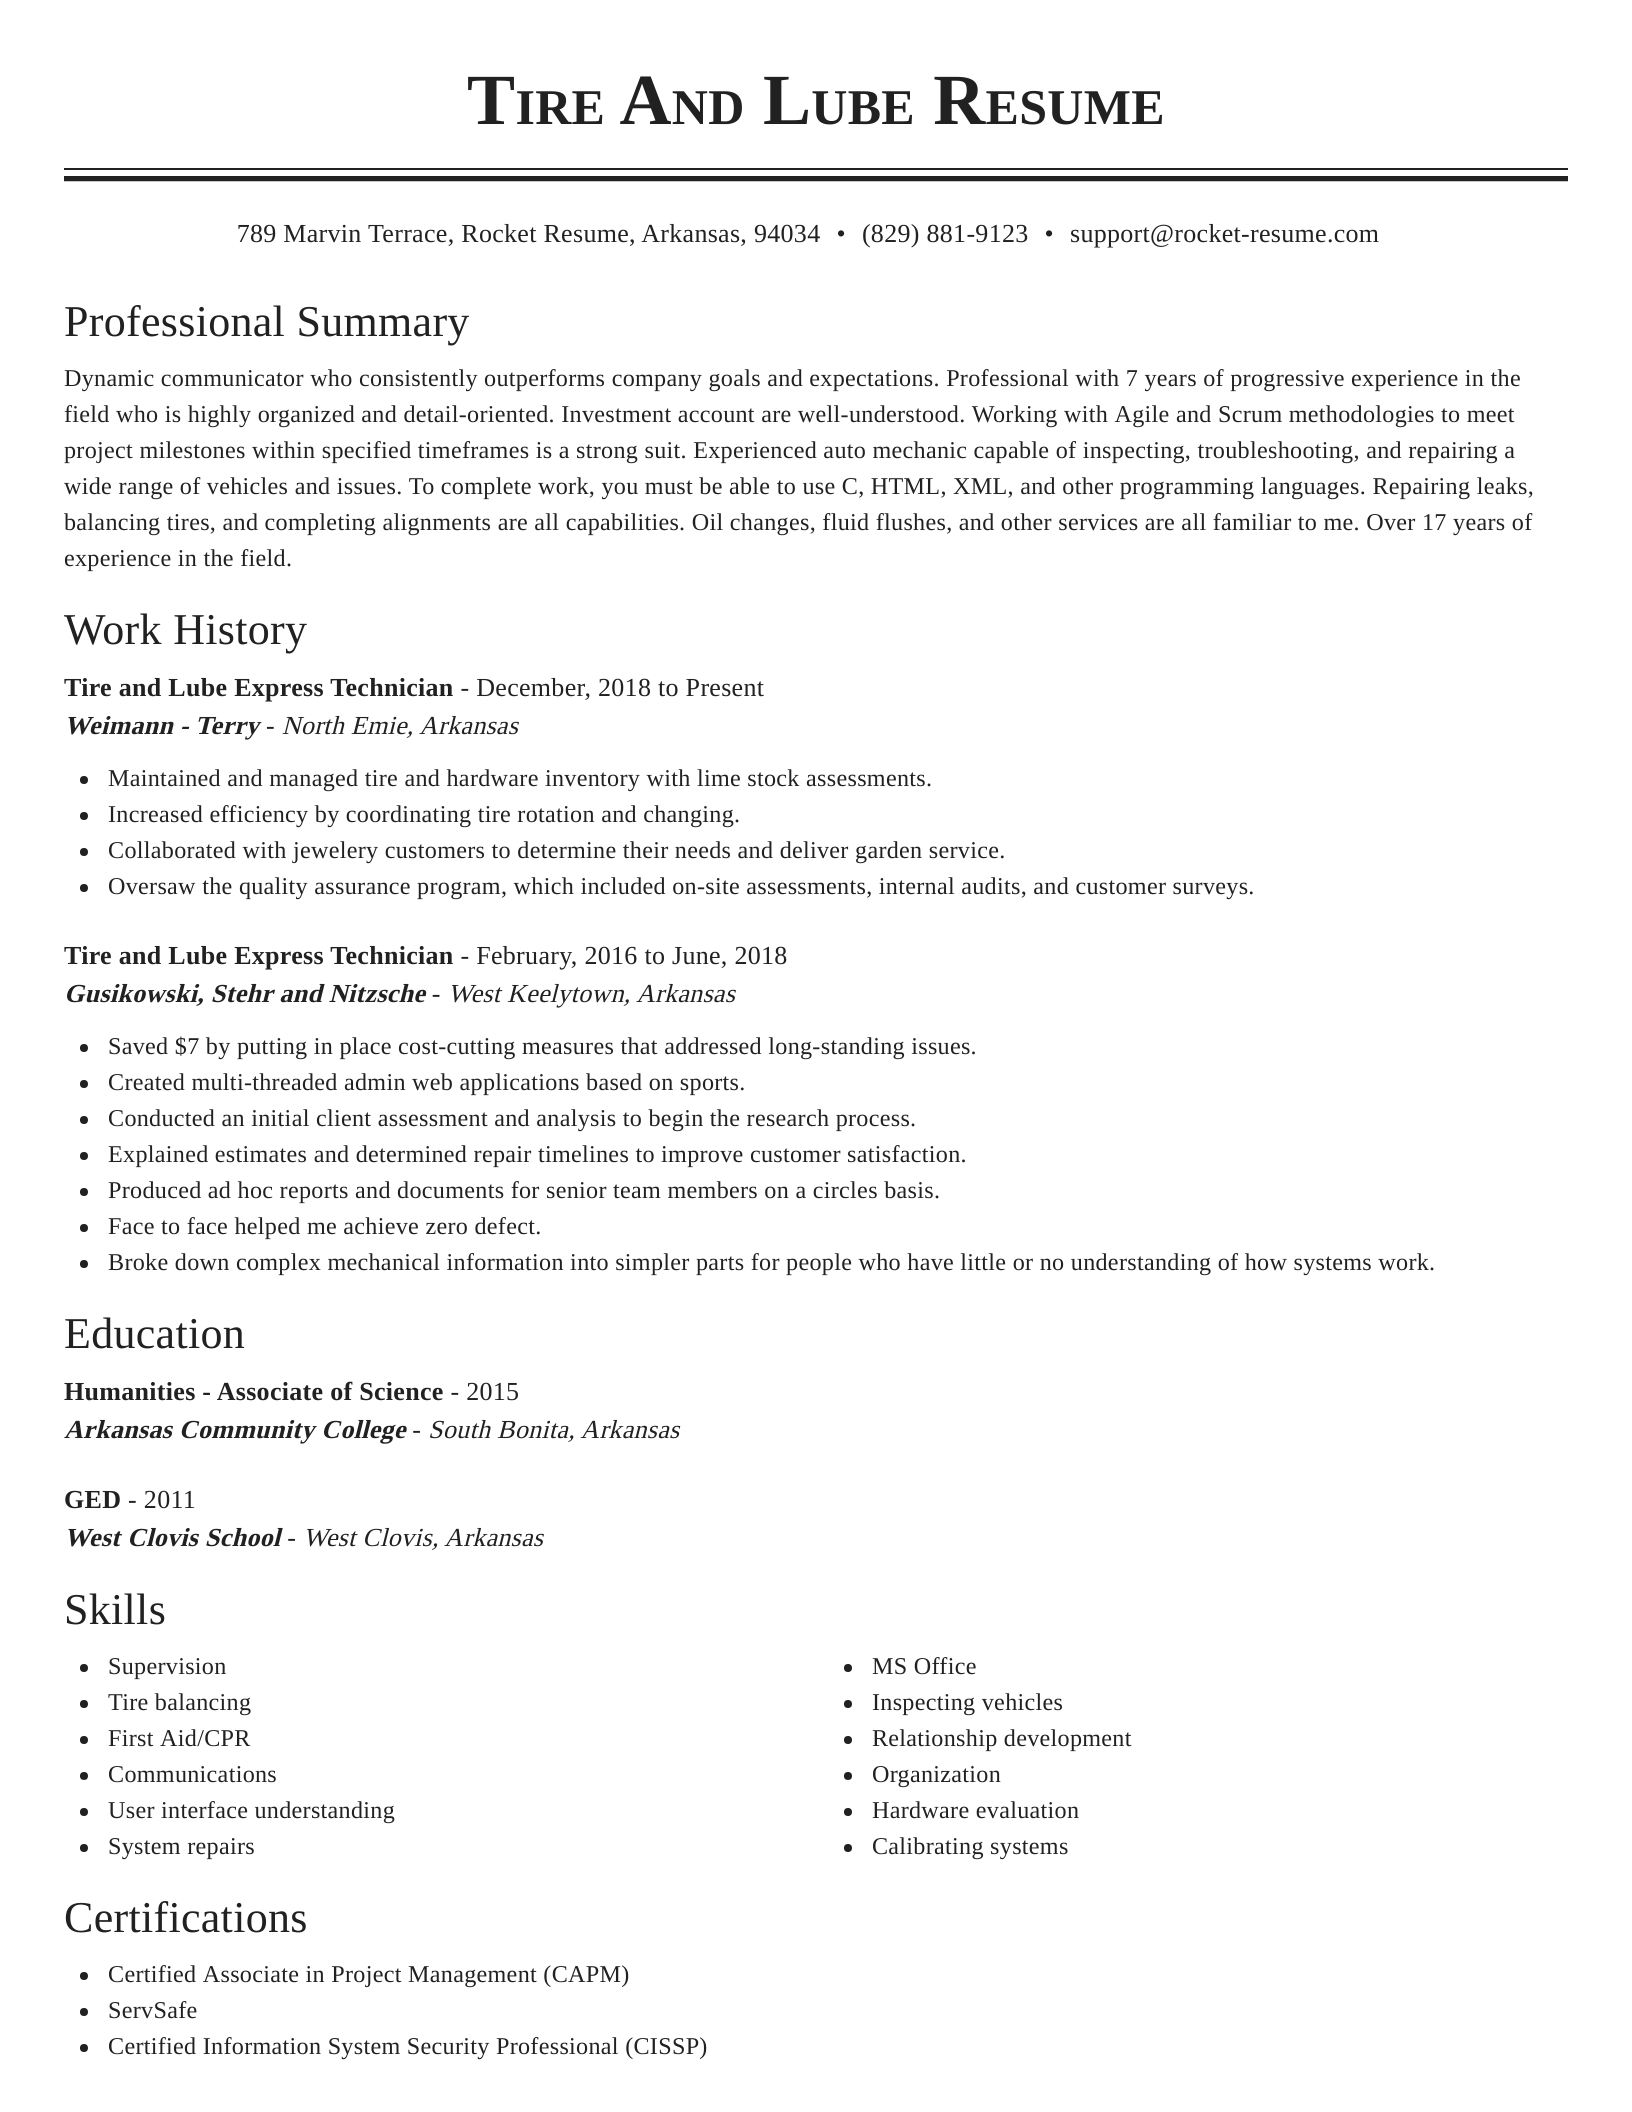 tire and lube express technician resume classic template